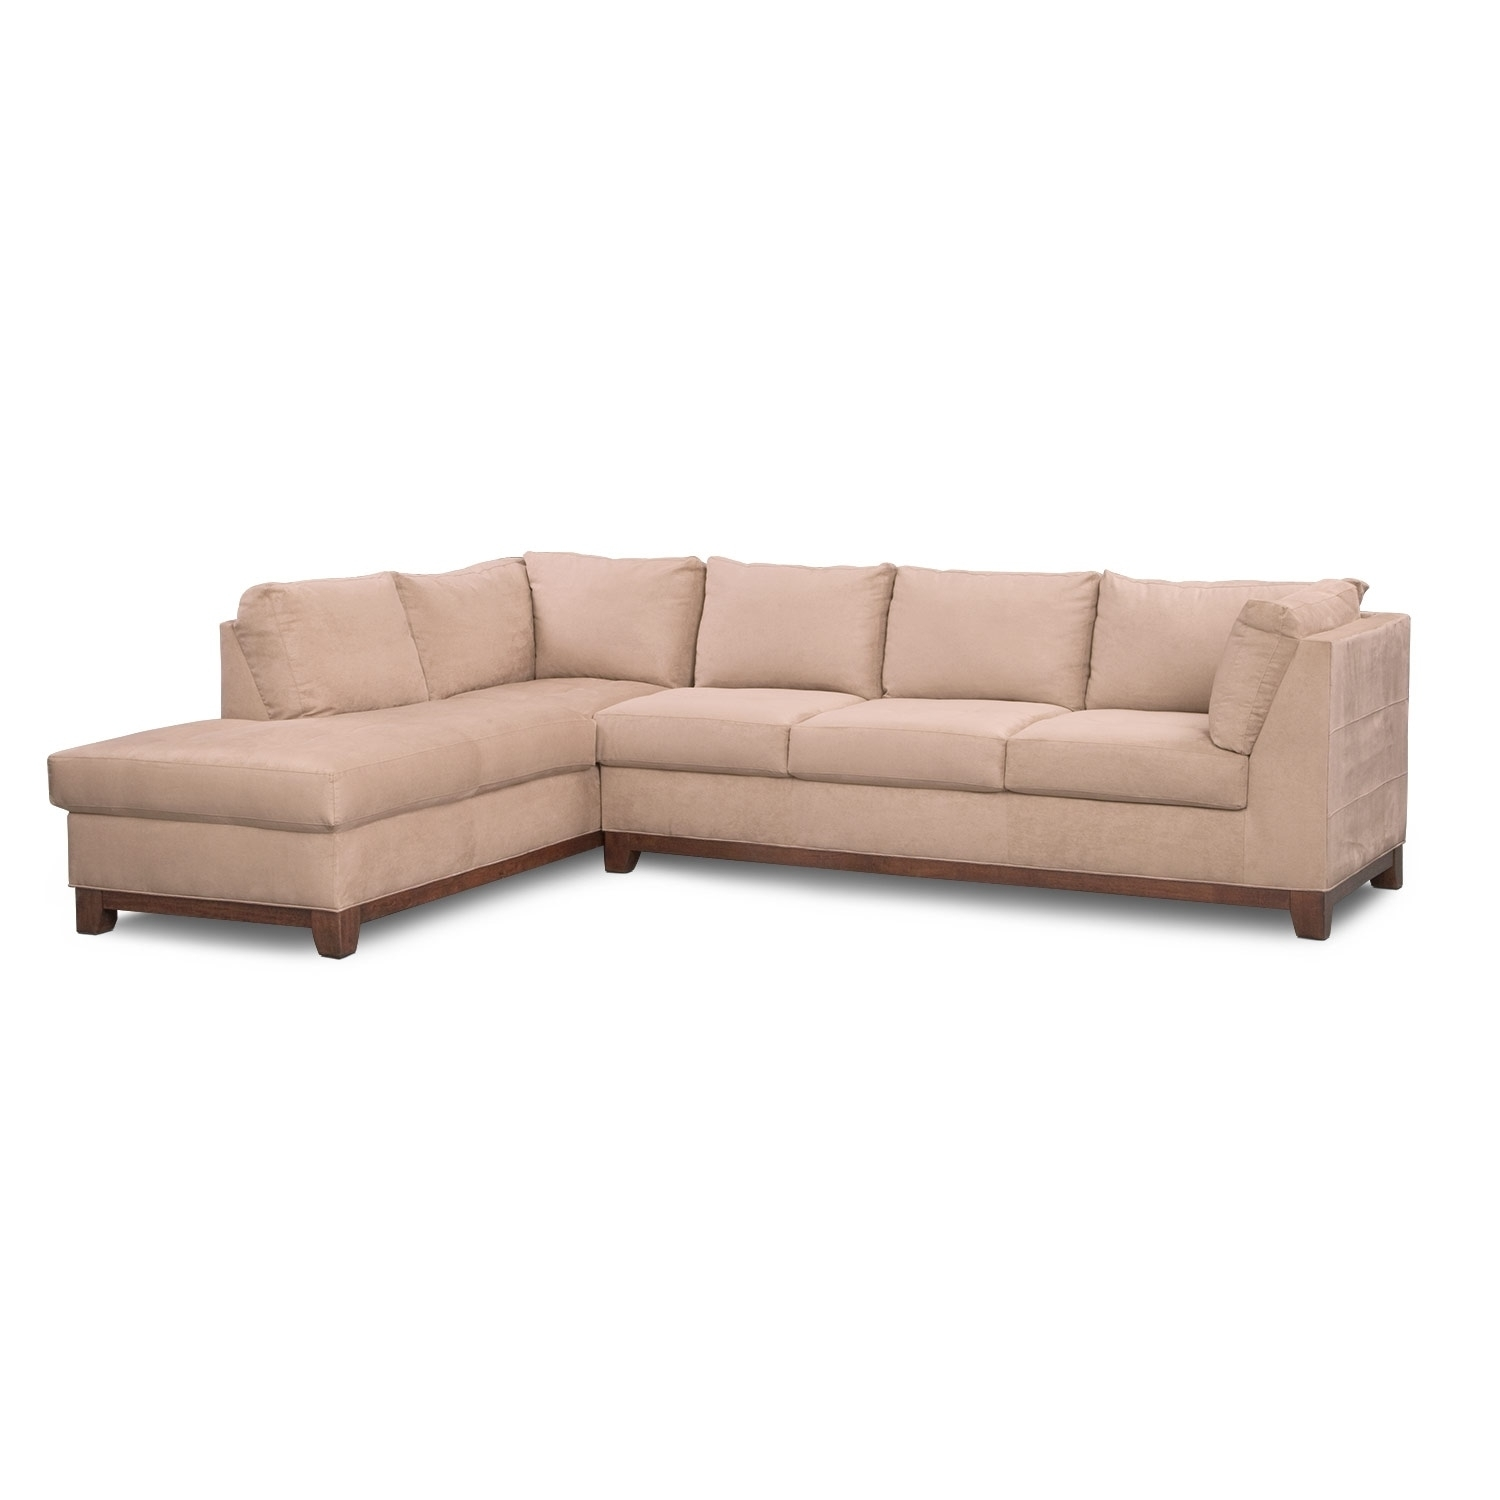 Soho 2 Piece Sectional With Left Facing Chaise – Cobblestone | Value Regarding Arrowmask 2 Piece Sectionals With Sleeper & Left Facing Chaise (View 3 of 25)